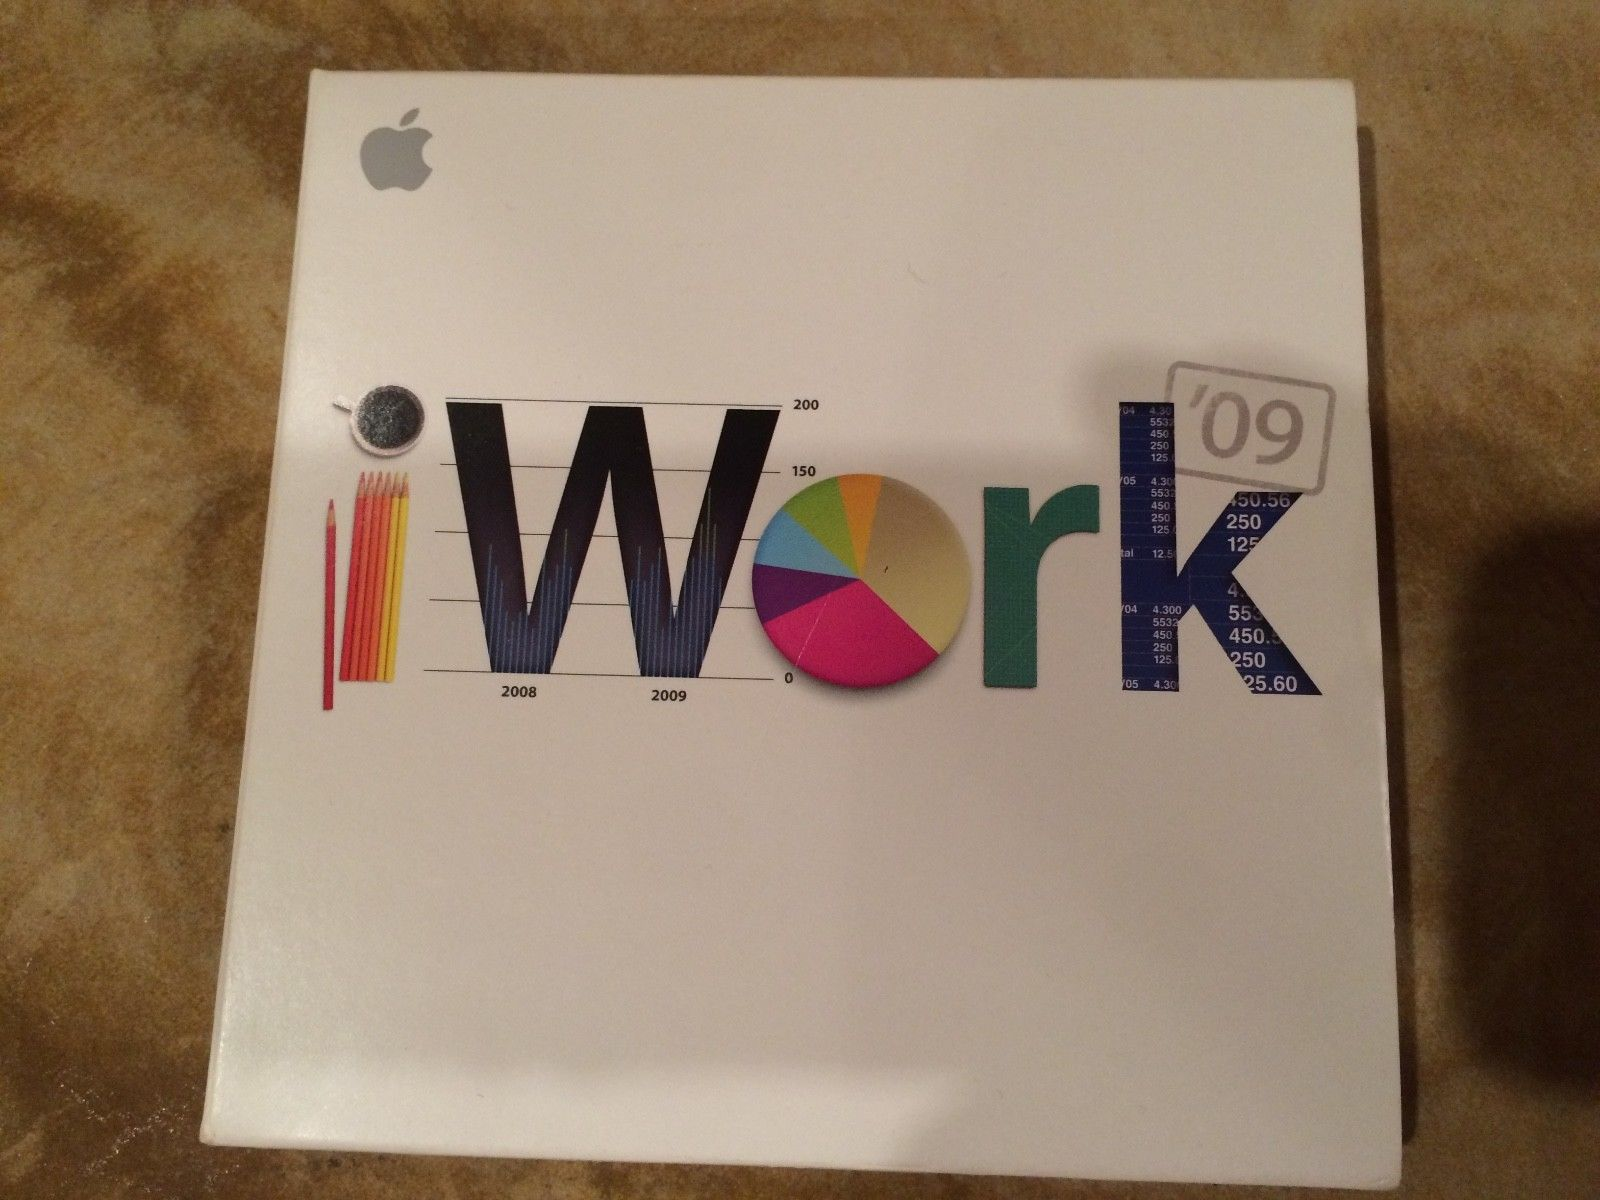 apple iwork 09 computer software installation disc and manual rh pinterest com iWork 09 Serial iWork 09 Serial